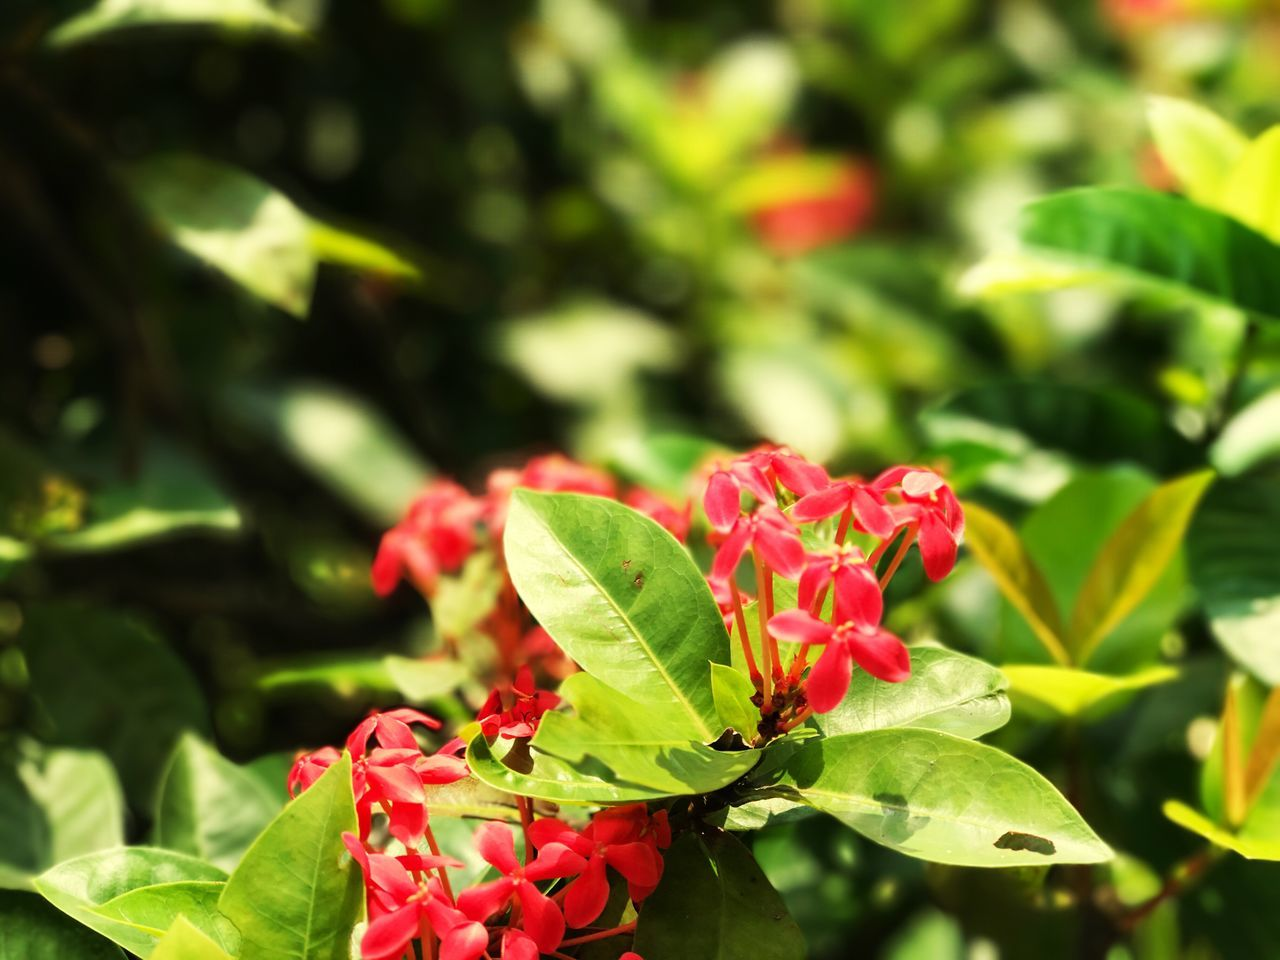 bloom to grow Leaf Growth Nature Plant Beauty In Nature Green Color Day No People Focus On Foreground Outdoors Close-up Freshness Red Fragility Flower Flower Head First Eyeem Photo